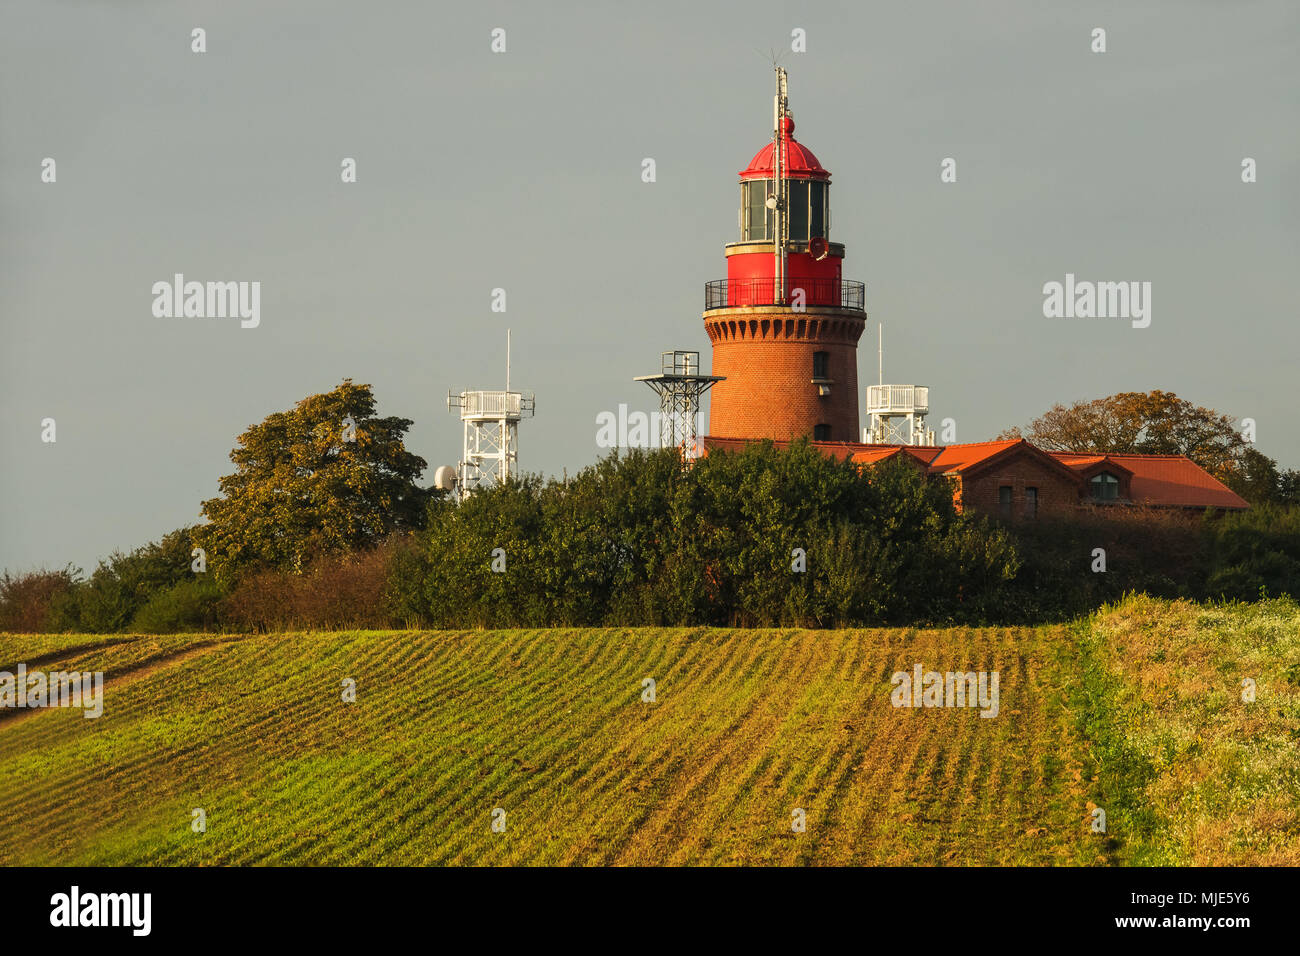 Lighthouse in the Bastorfer Huk, the Baltic Sea - Stock Image